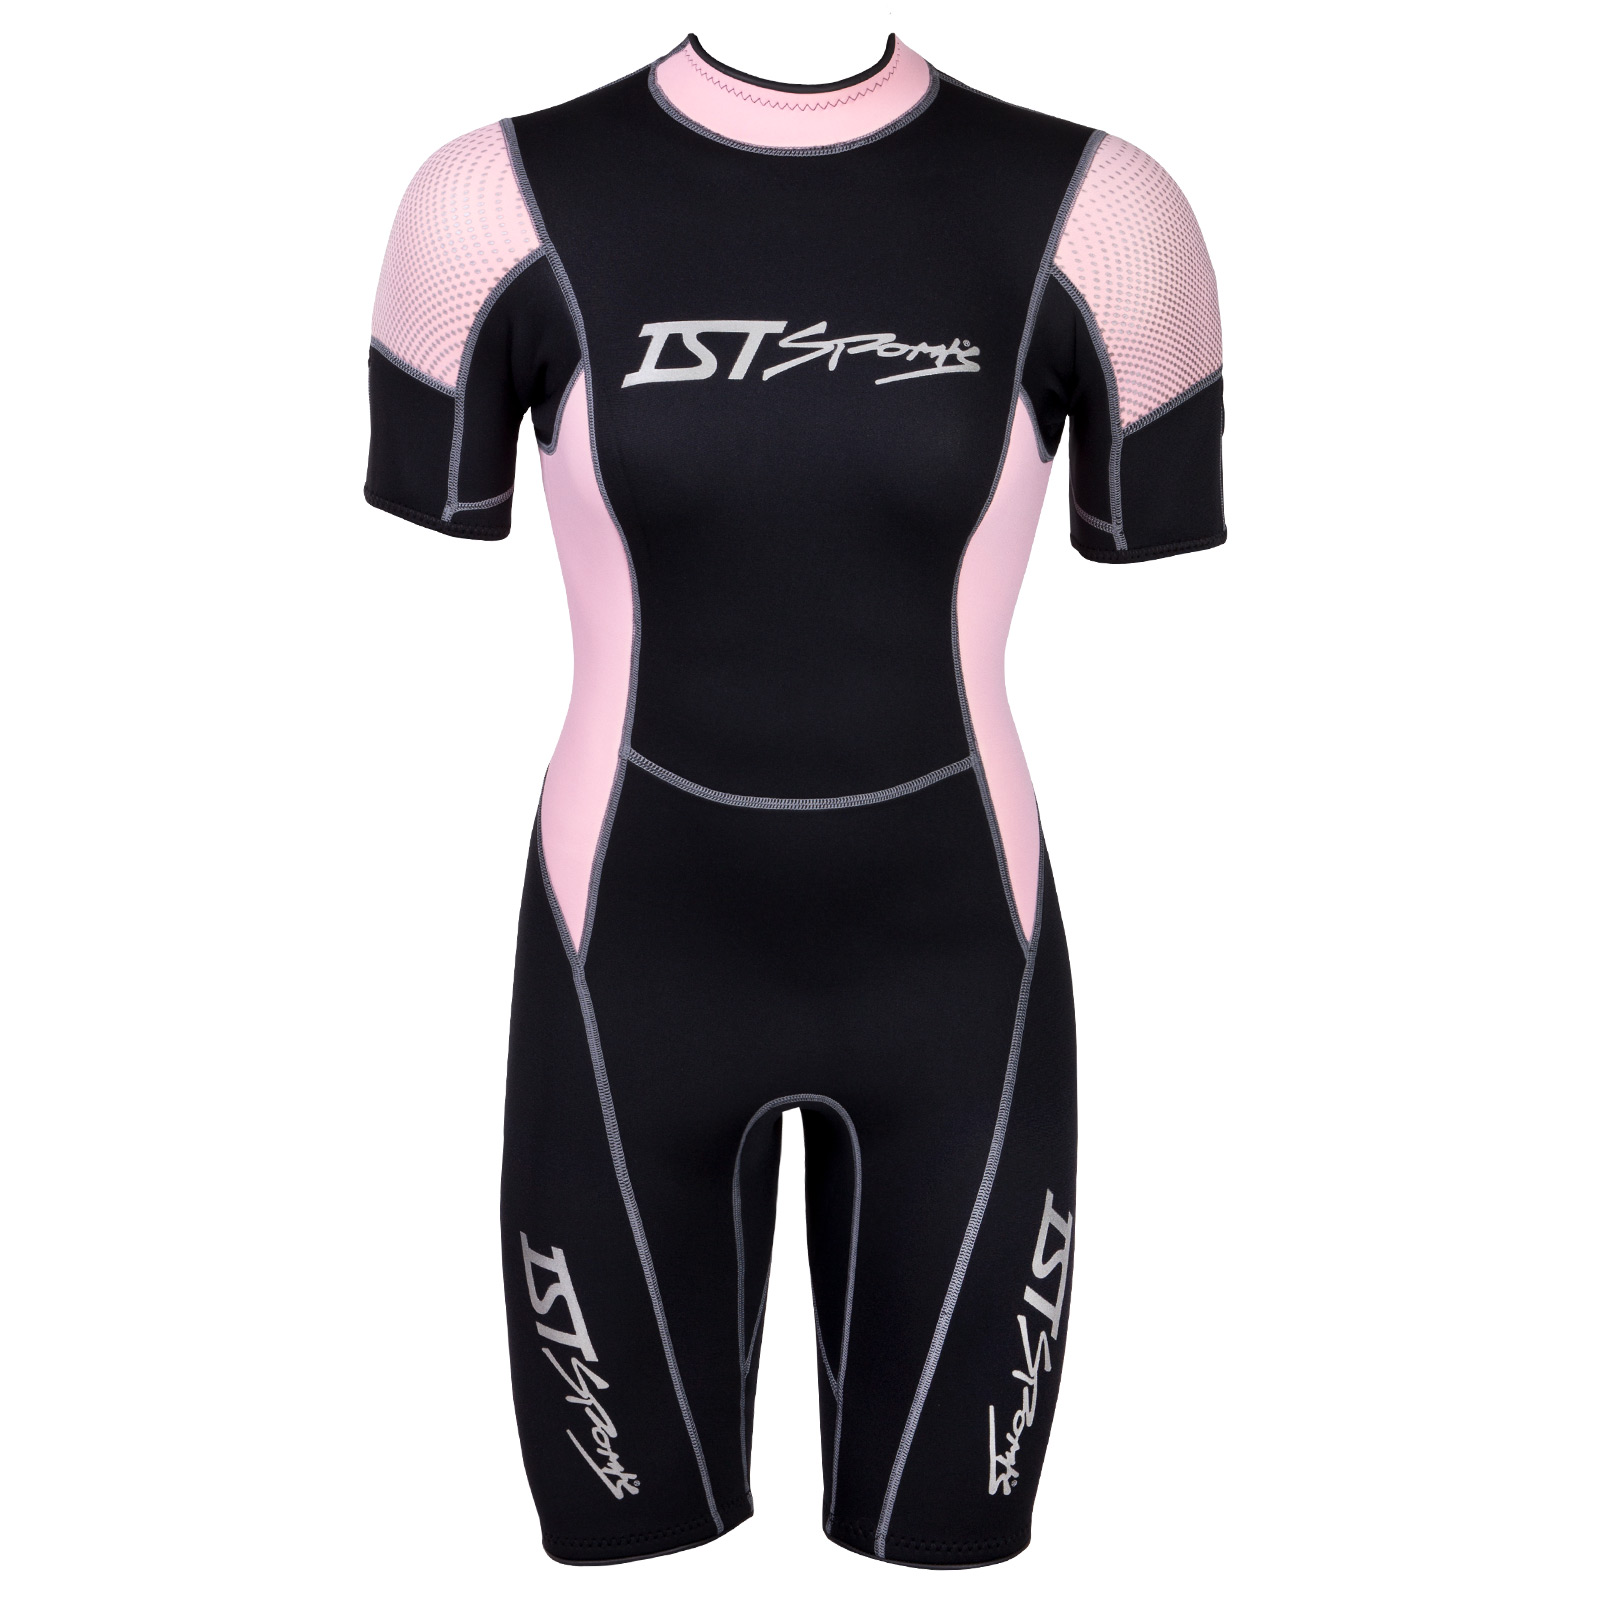 2.5mm All Purpose Adult Watersport Shorty